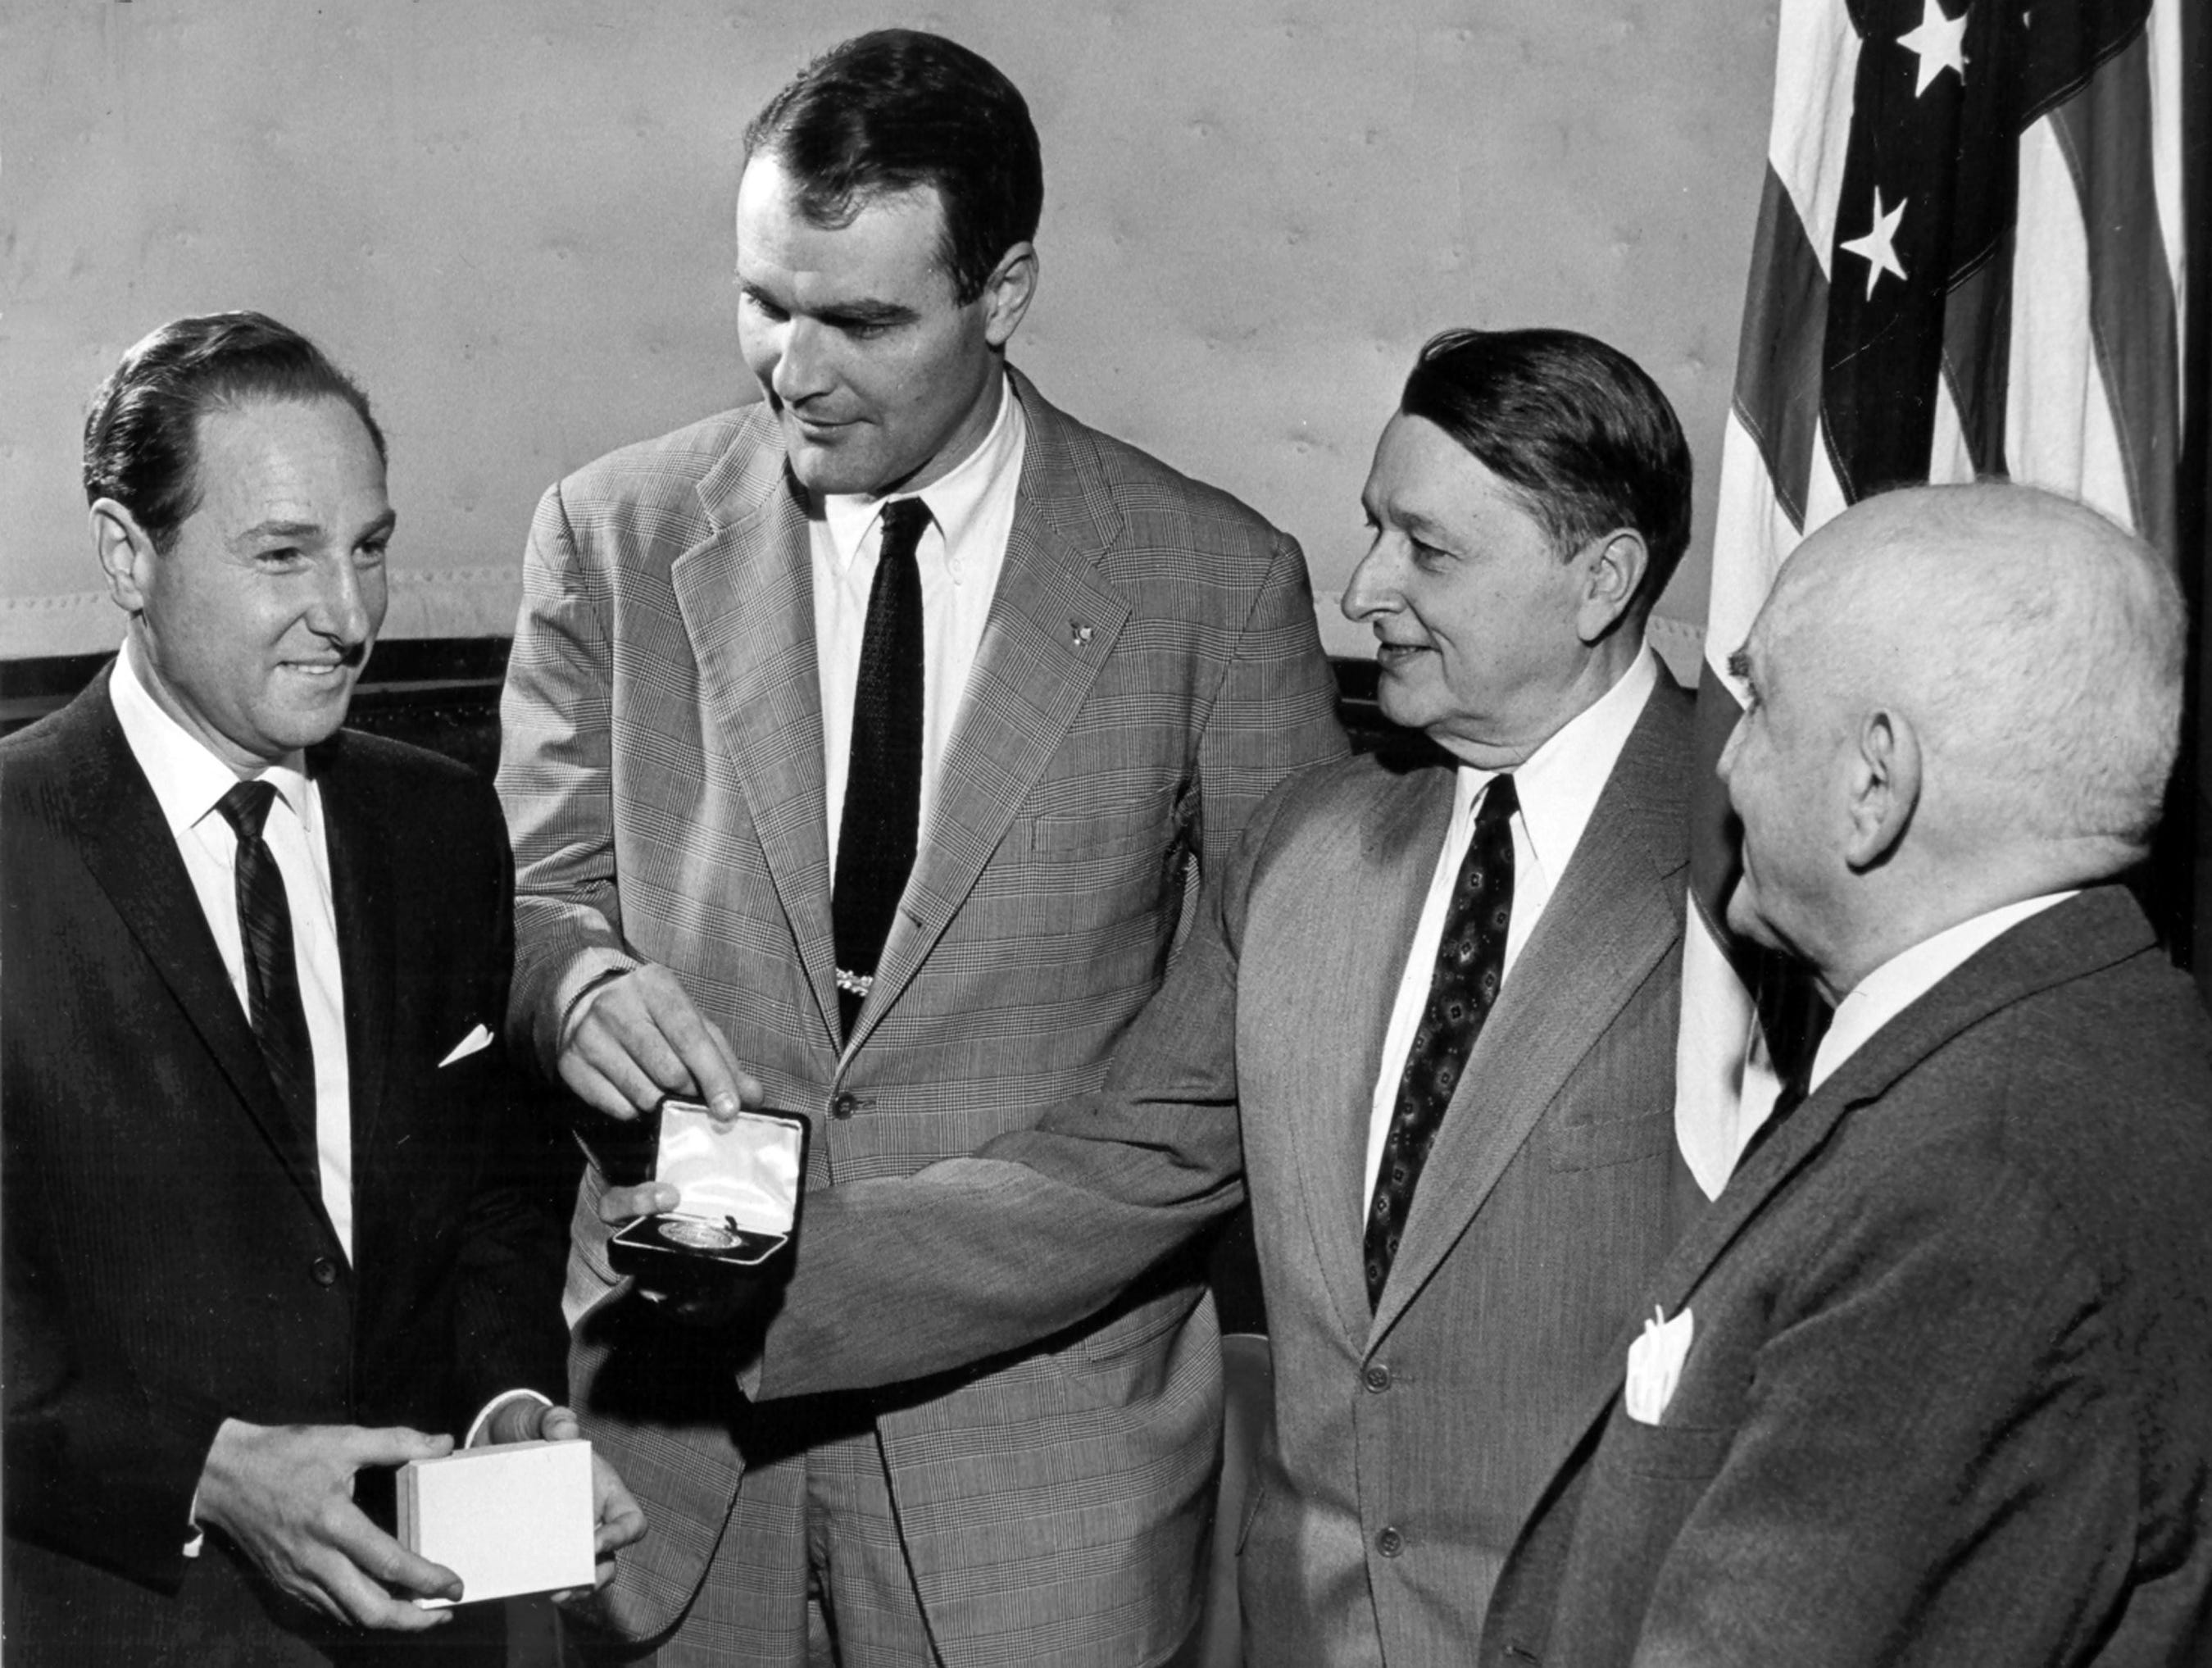 "Fred Goldsmith (left) received the kudos for his brother, Jack Goldsmith (not shown) on March 4, 1960, when the National Conference of Christians & Jews honored the latter at the Claridge Hotel. Admiring the medallion, which accompanied the citation, were (from left) Mayor Henry Loeb, Everett Cook and former mayor Walter Chandler. Mr. Goldsmith was snowbound in New York and unable to attend. The NCCJ citation described Jack Goldsmith as a ""merchant, philanthropist, soldier, president of Goldsmith's and (who) has supported the National Conference objectives, giving of his time and means."""